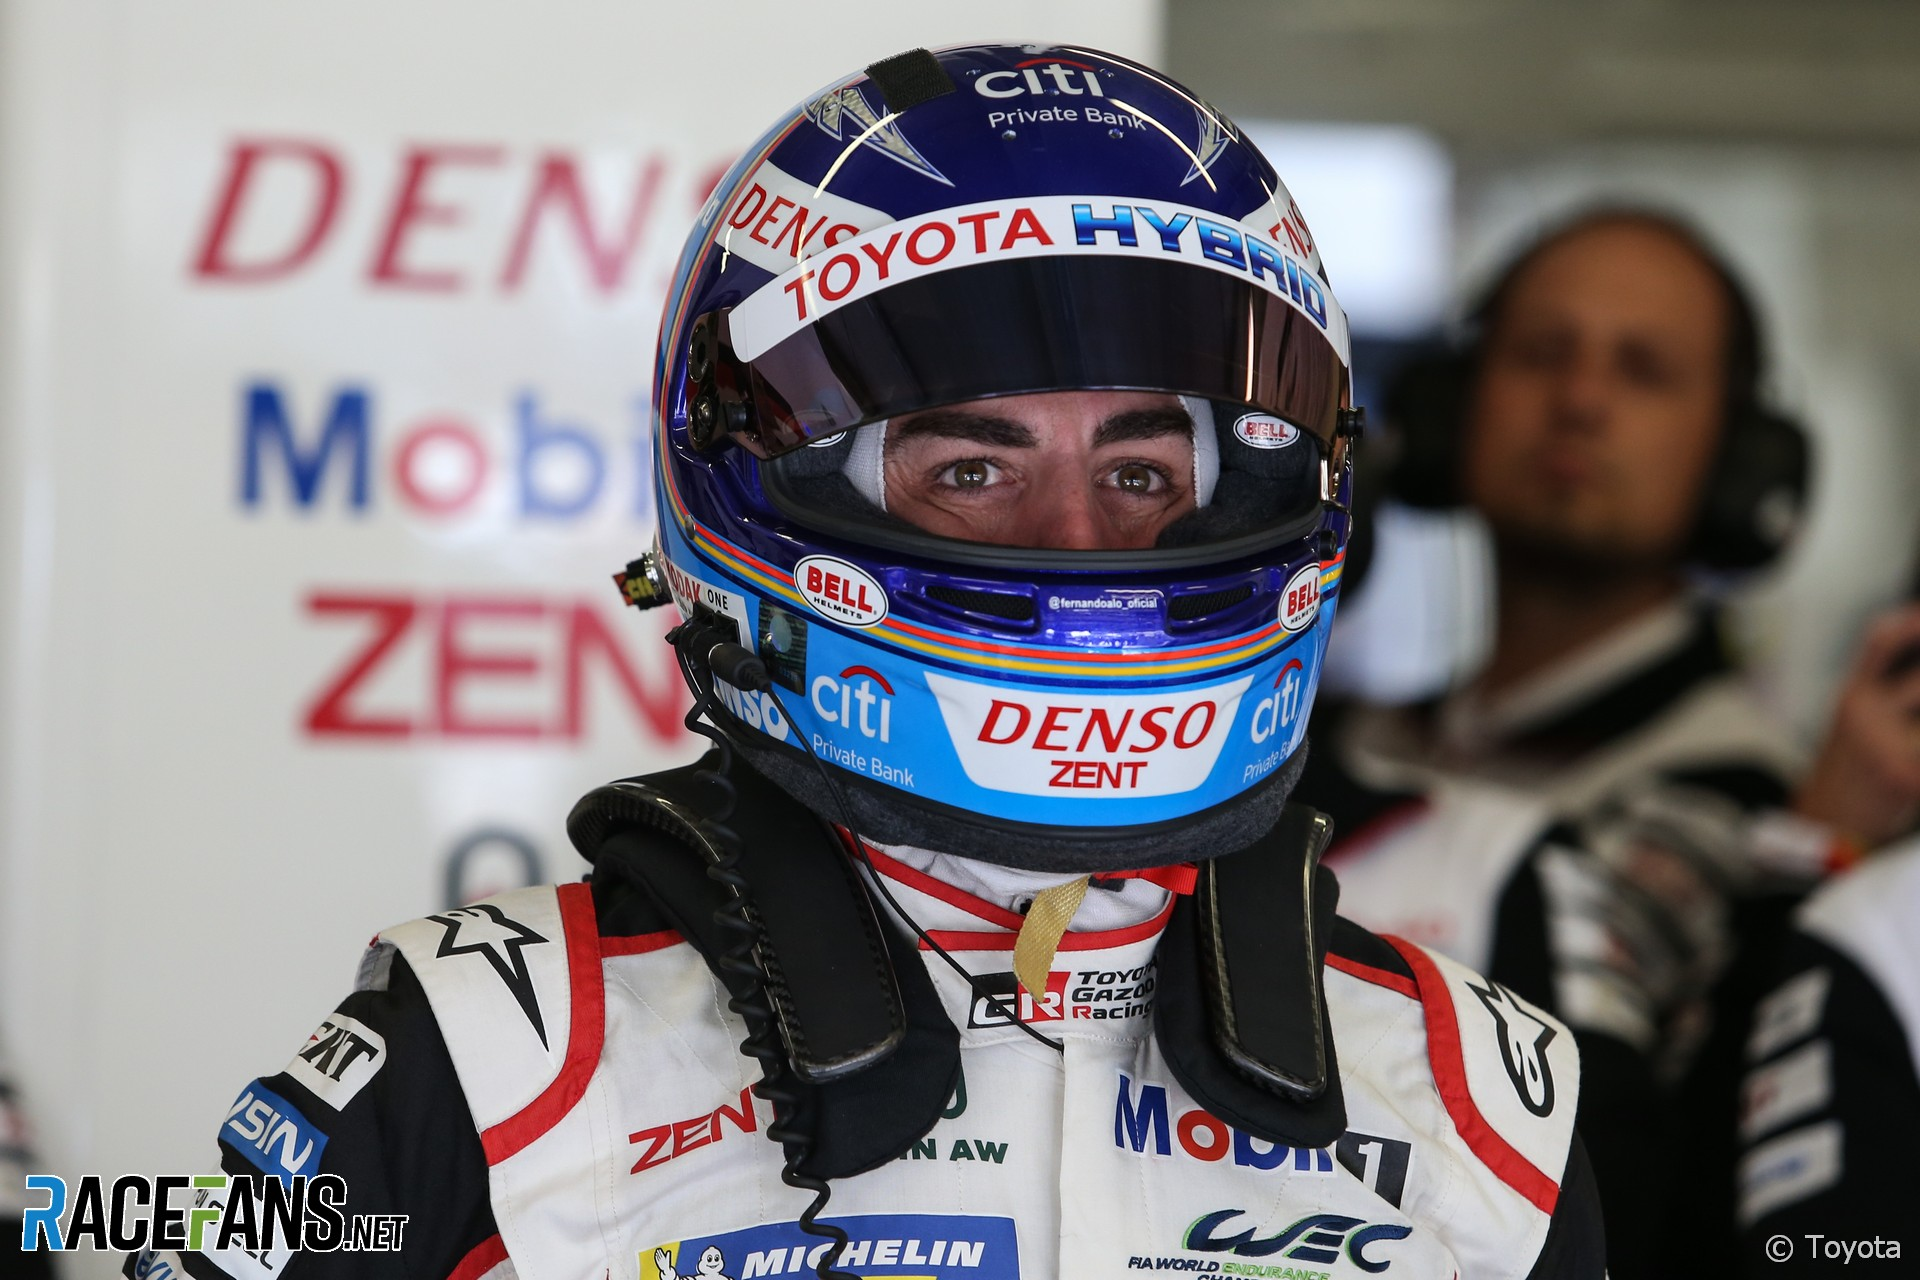 Alonso, Nakajima and Buemi secure second Le Mans win for Toyota